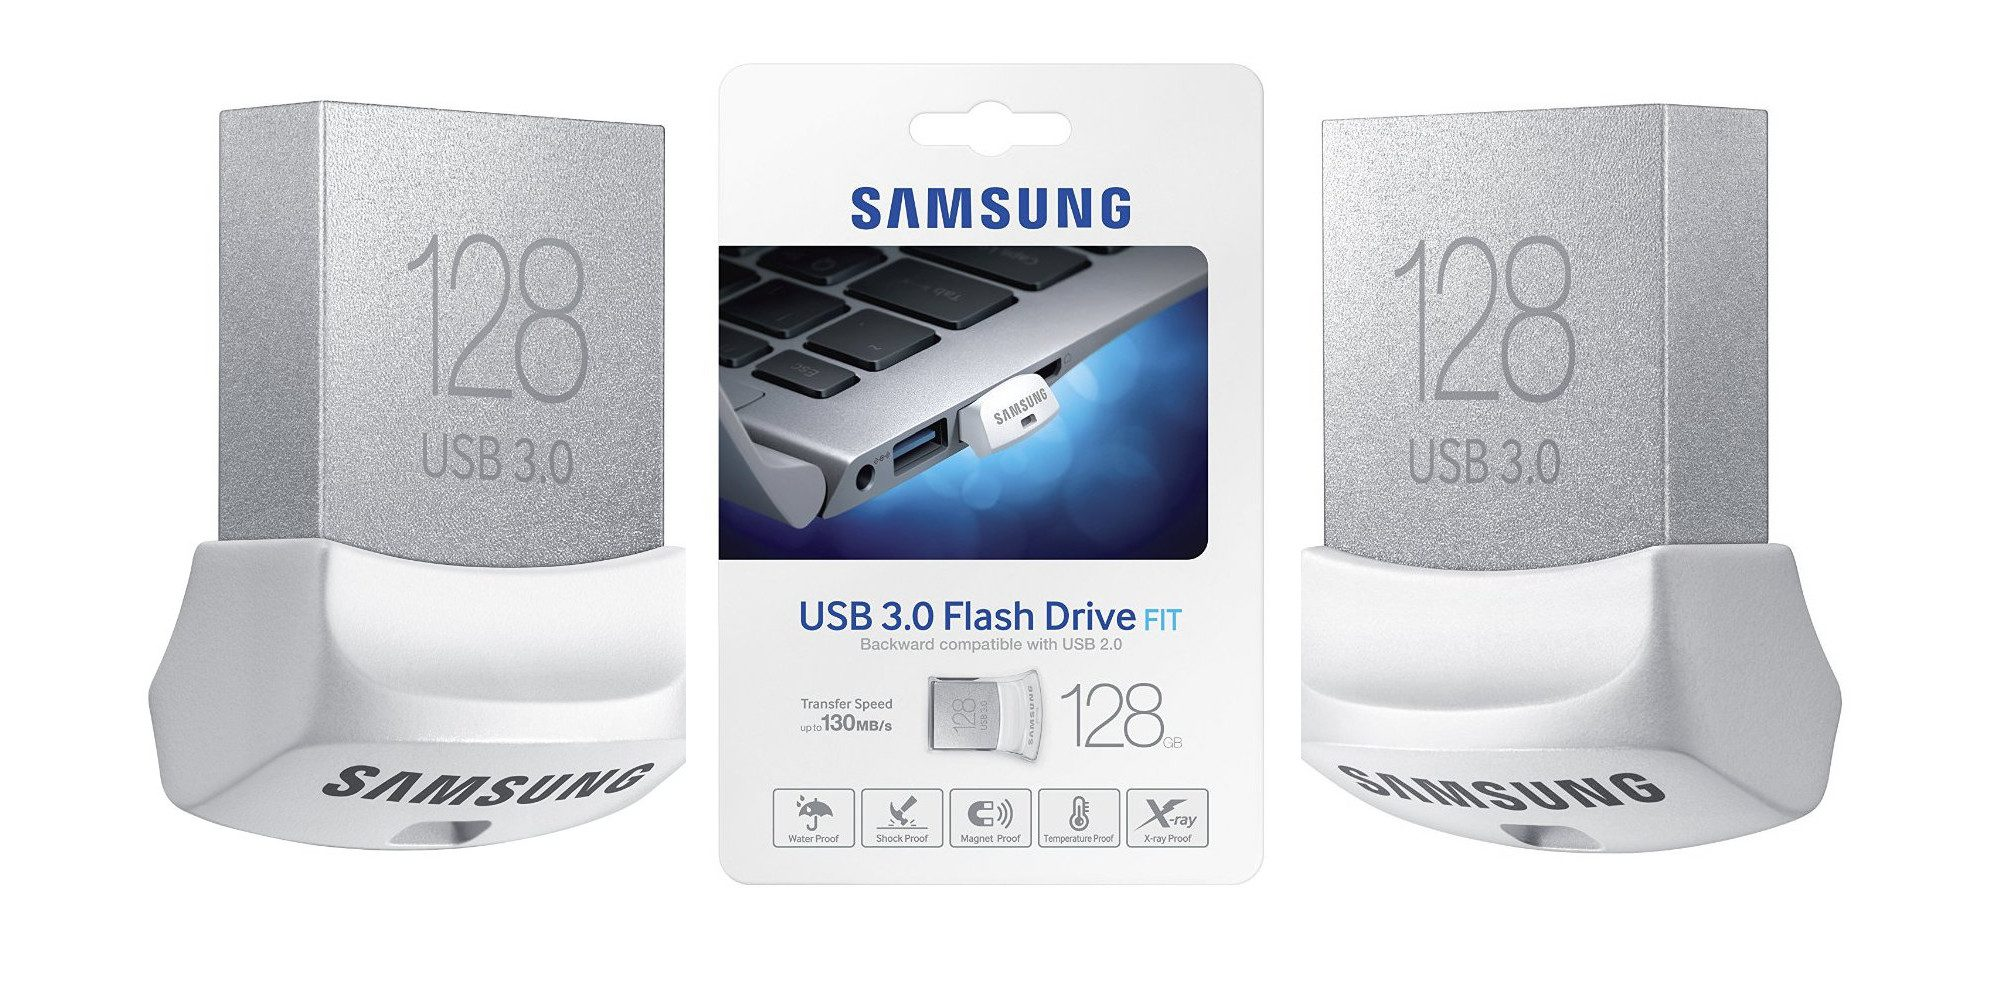 samsung-128gb-usb-3-0-flash-drive-fit-4